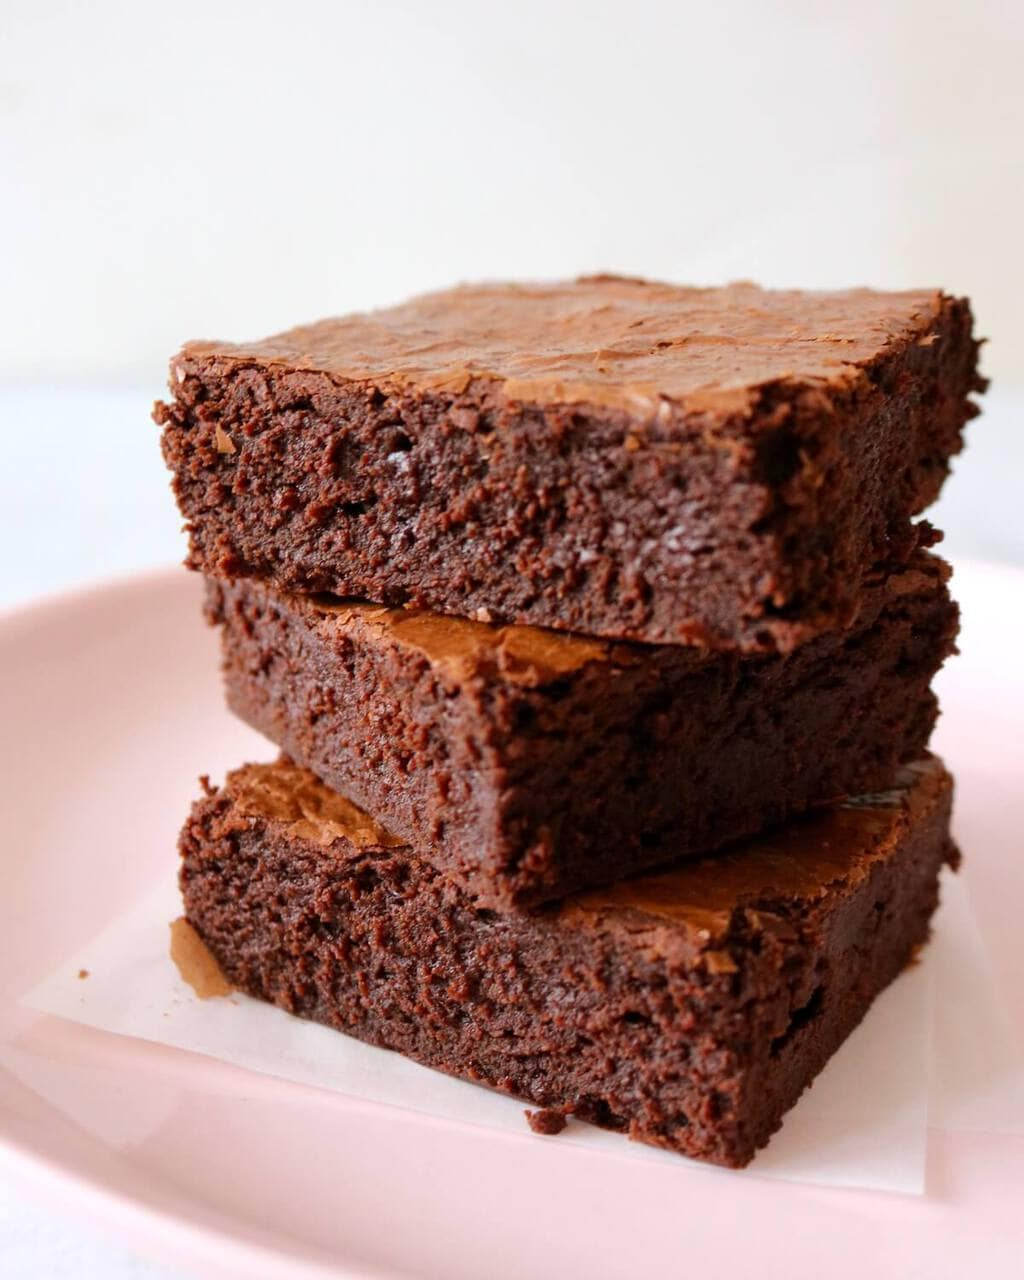 Stack of three brownies on pink plate